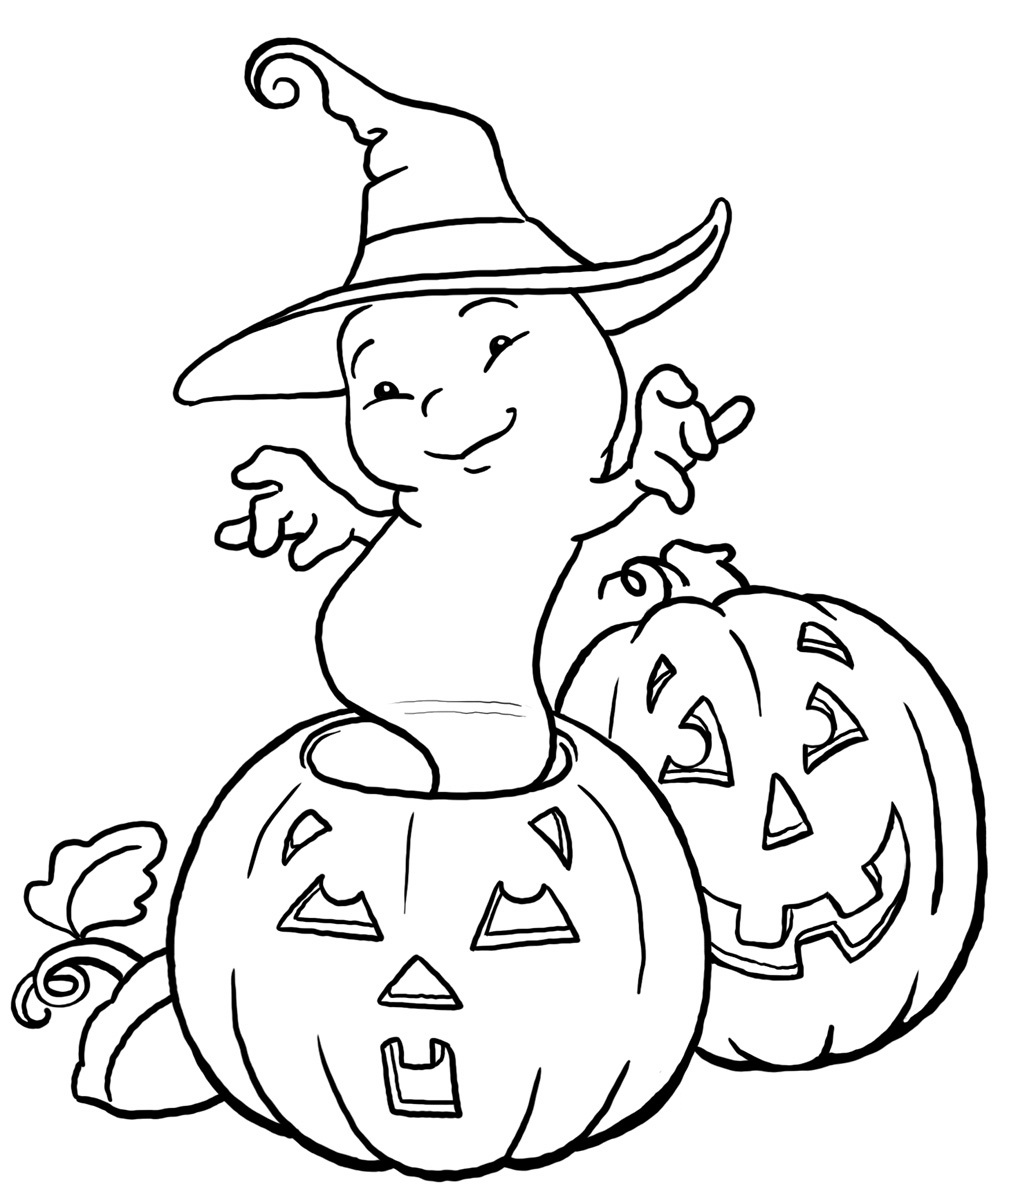 Ghost Coloring Pages For Kids